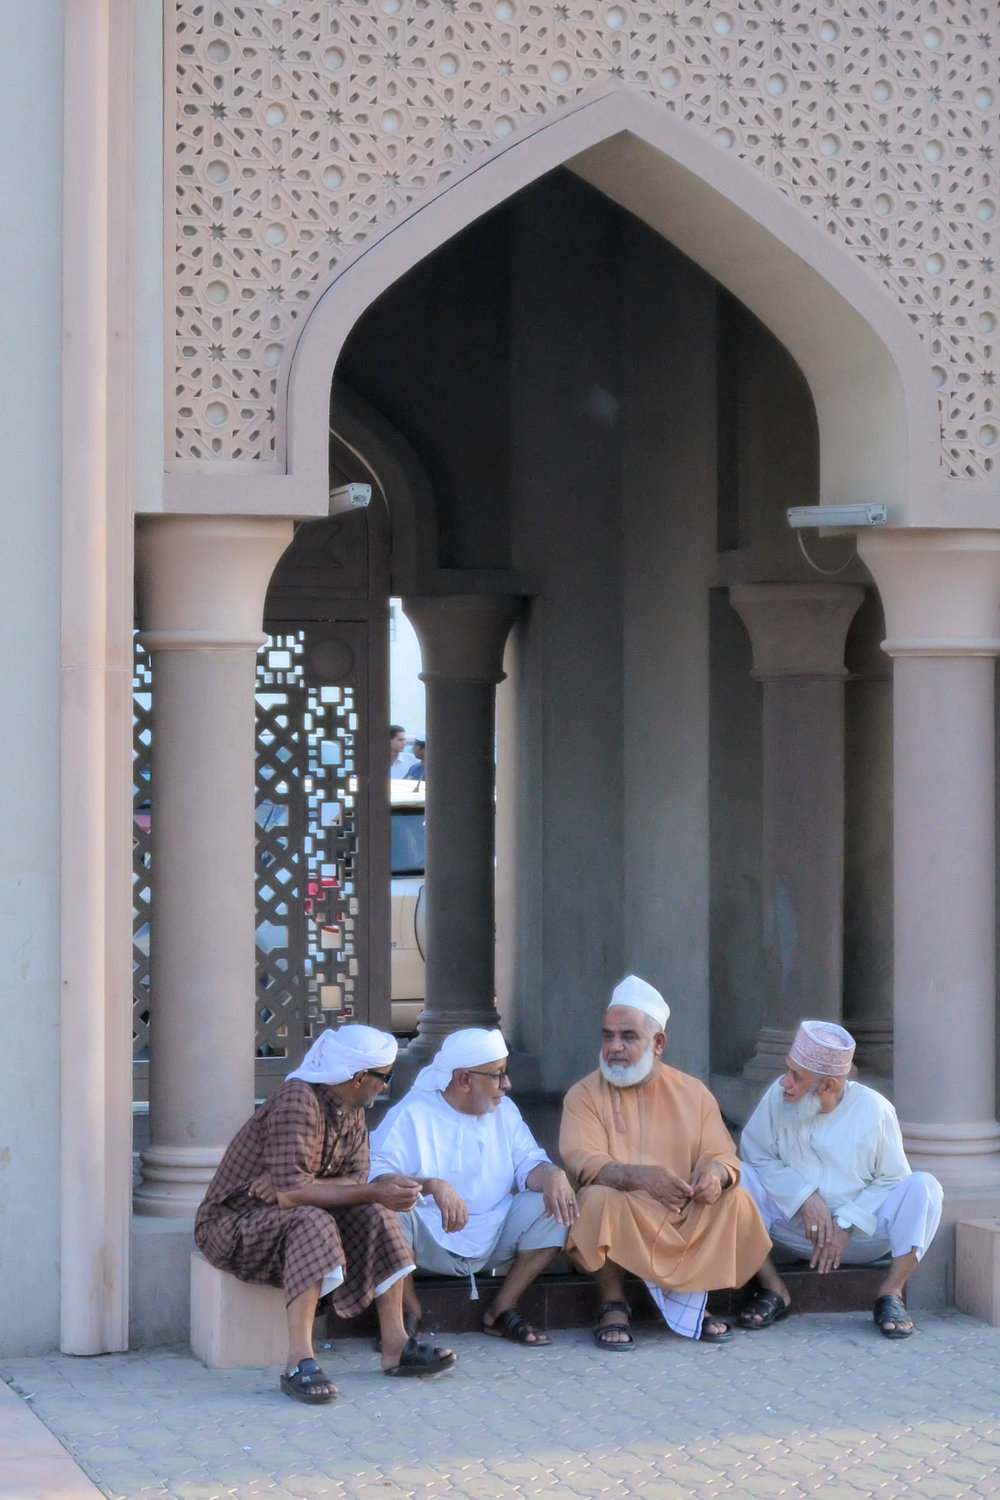 Omani men discuss important matters on the steps of a mosque in Muscat.